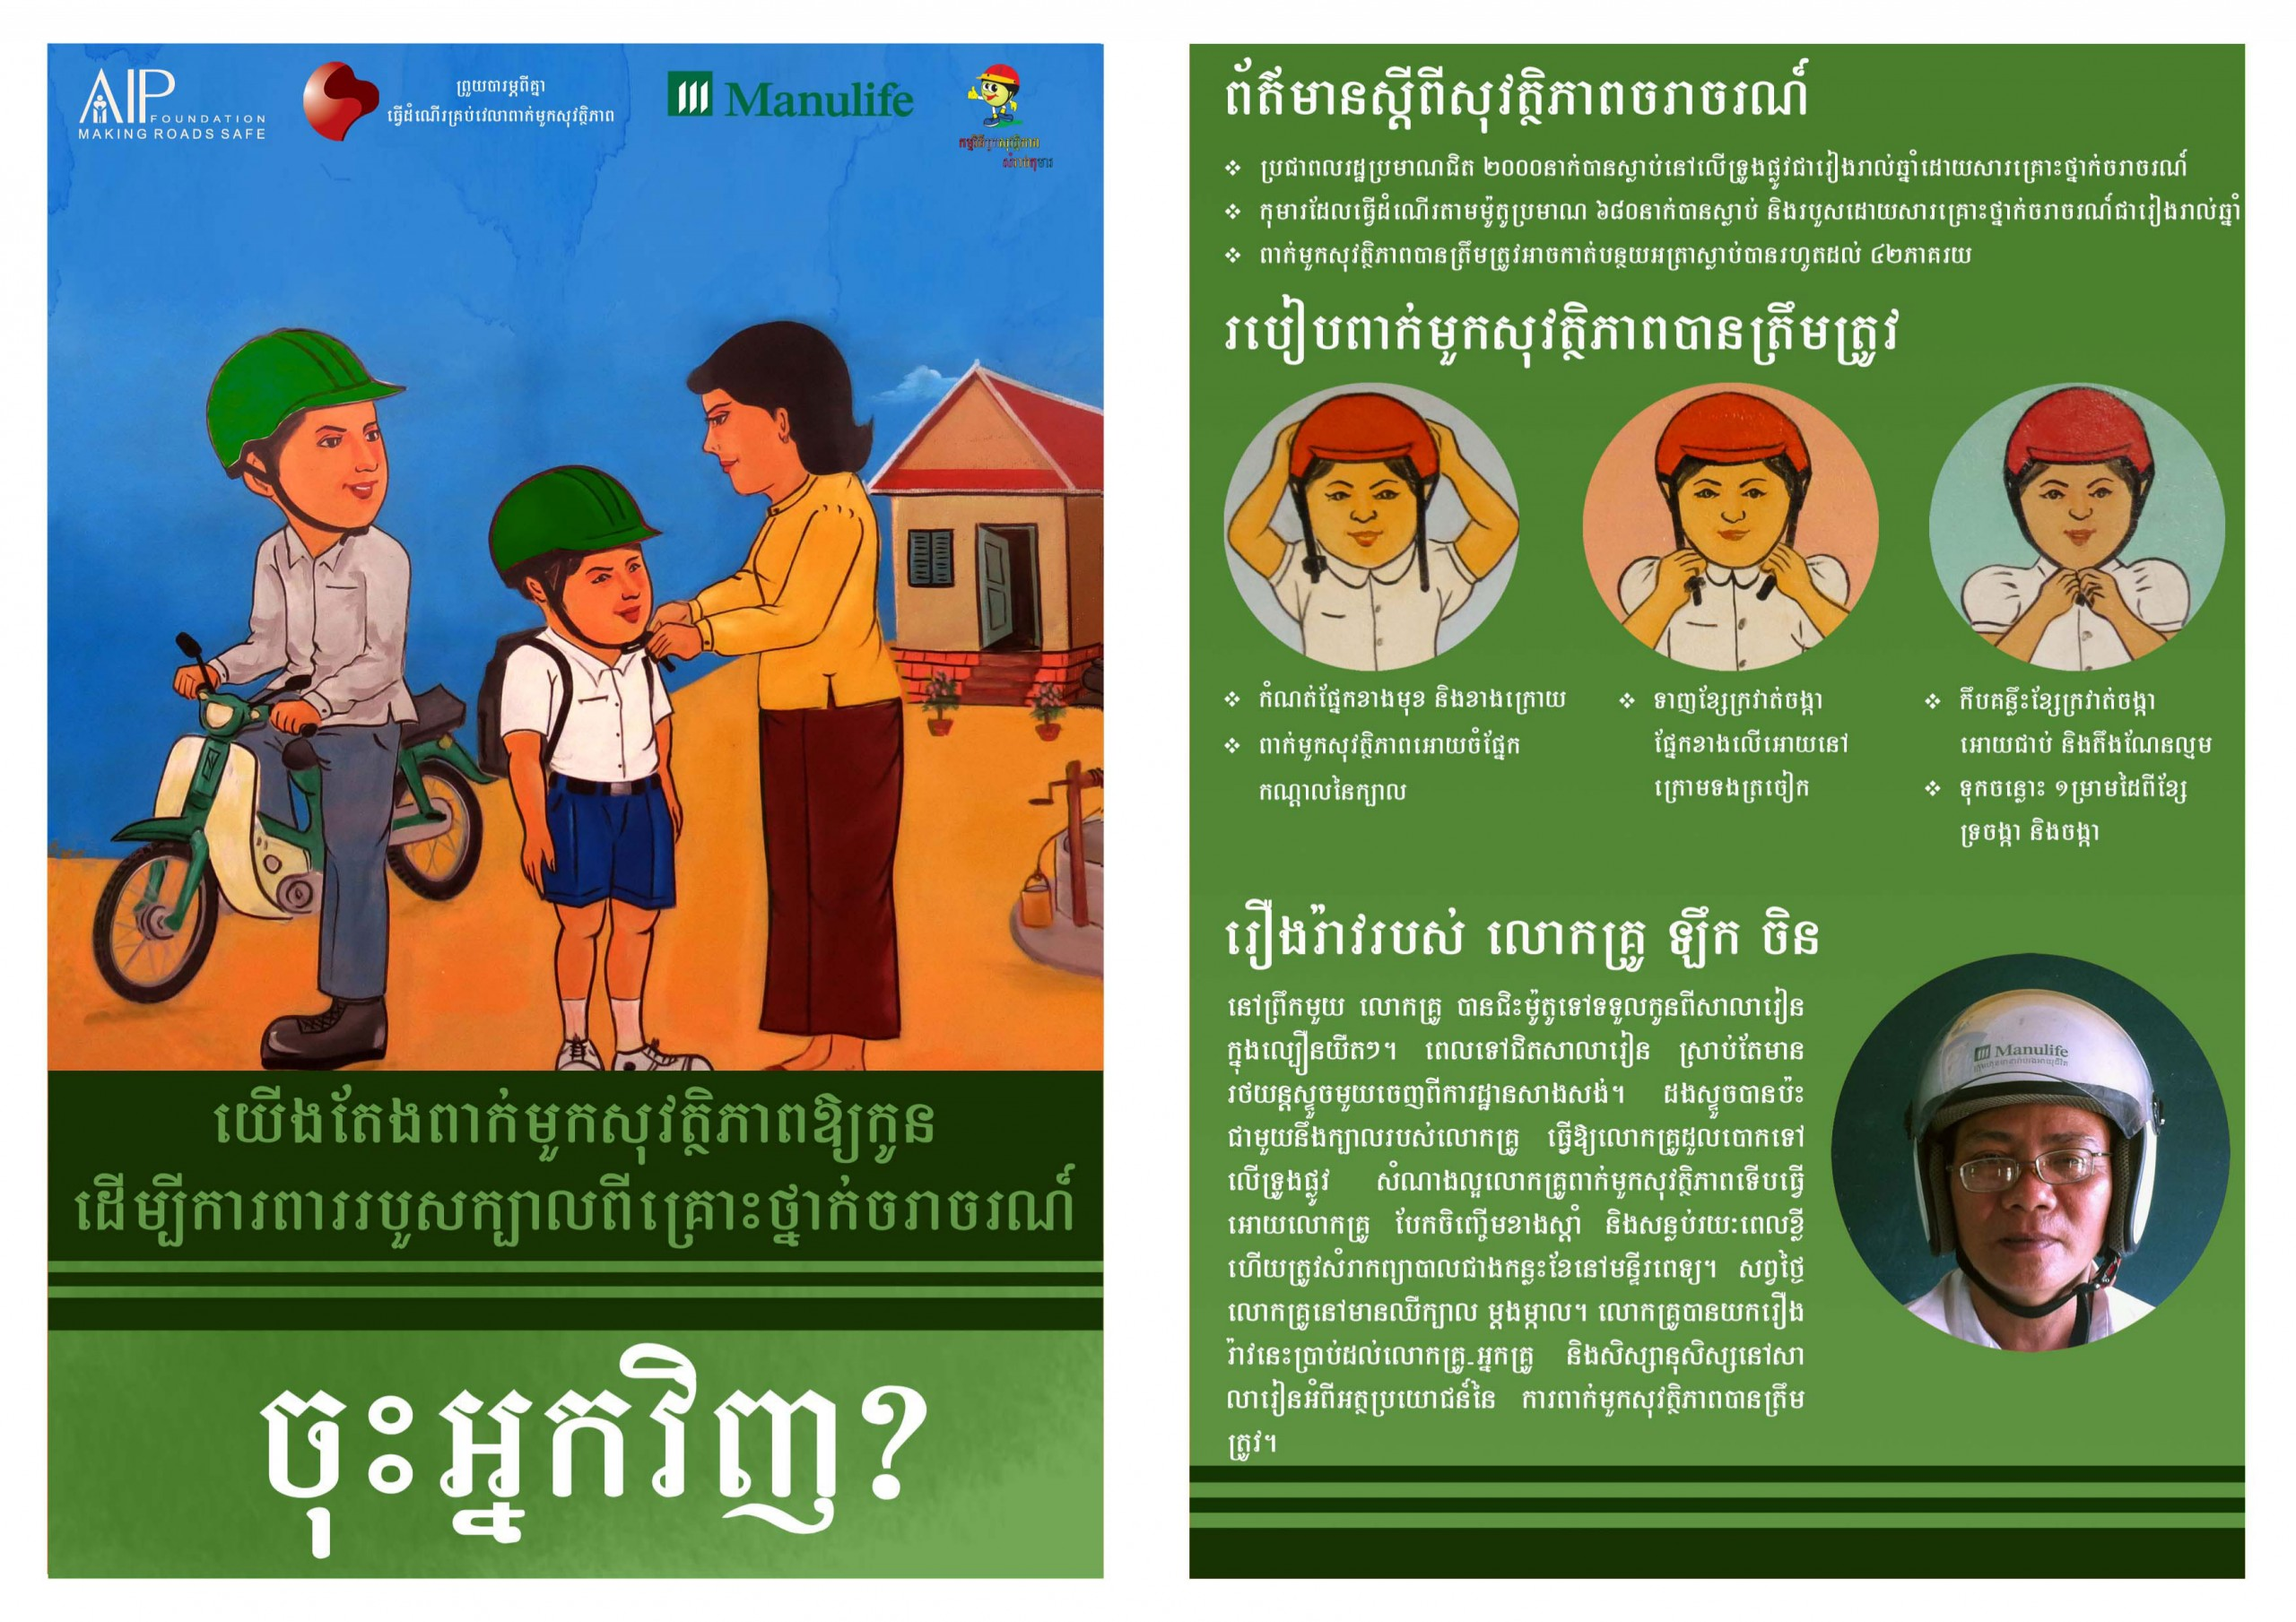 Helmet use flyer supported by Manulife Cambodia Plc.